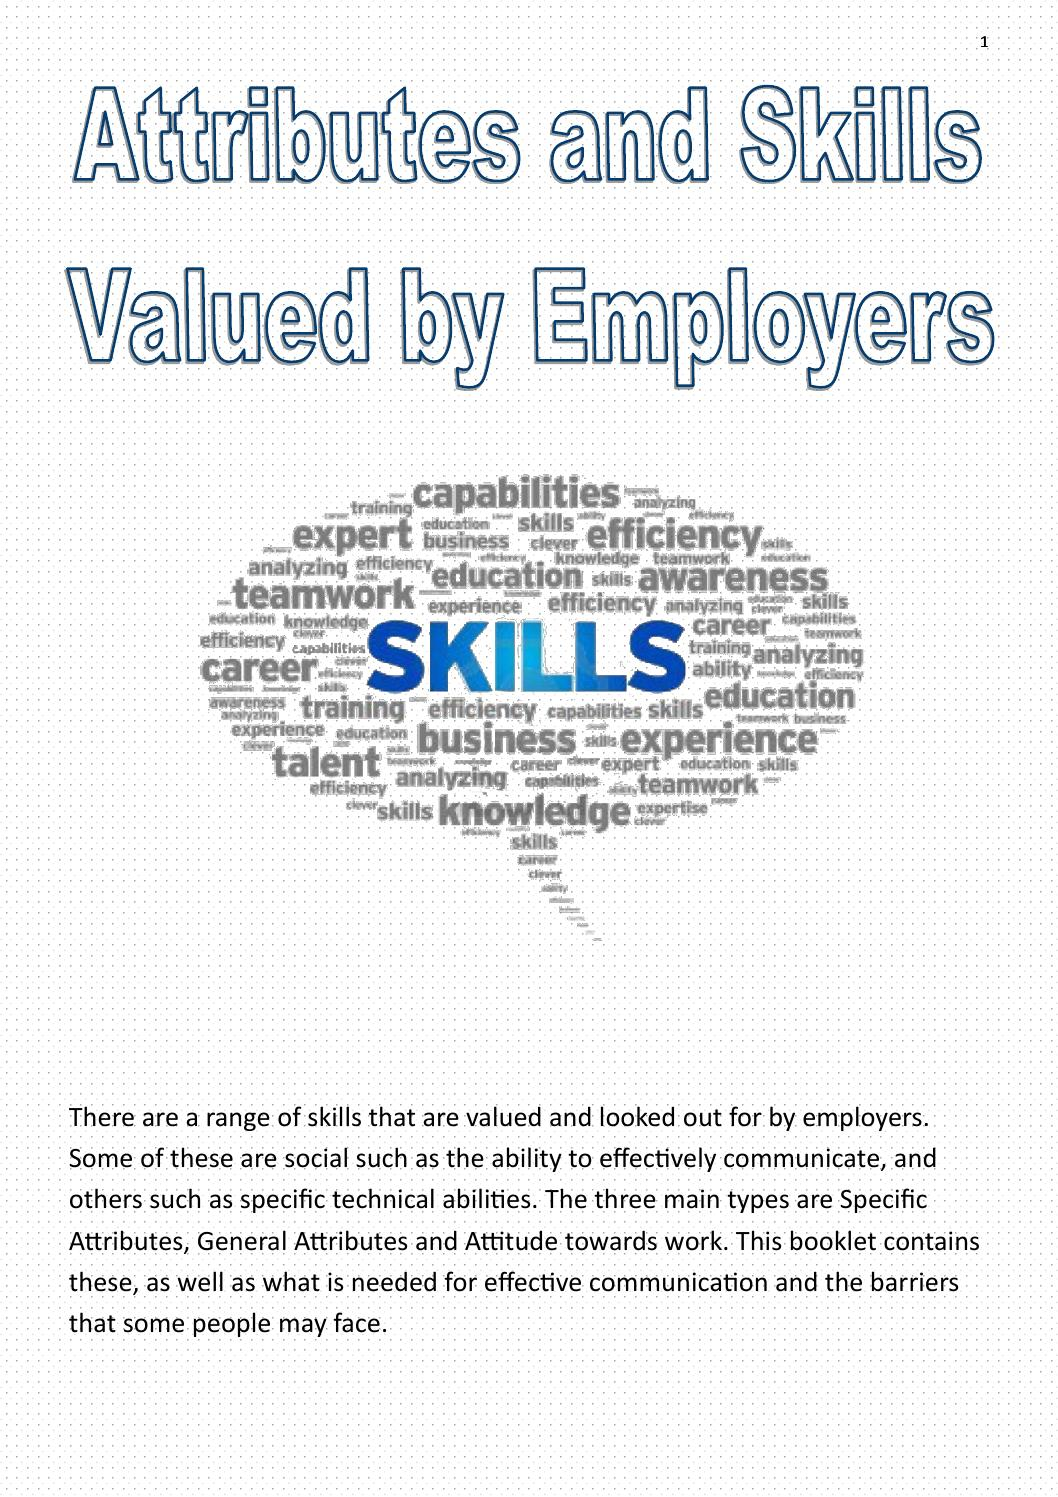 Attributes and Skills Valued by Employers by jordan - issuu